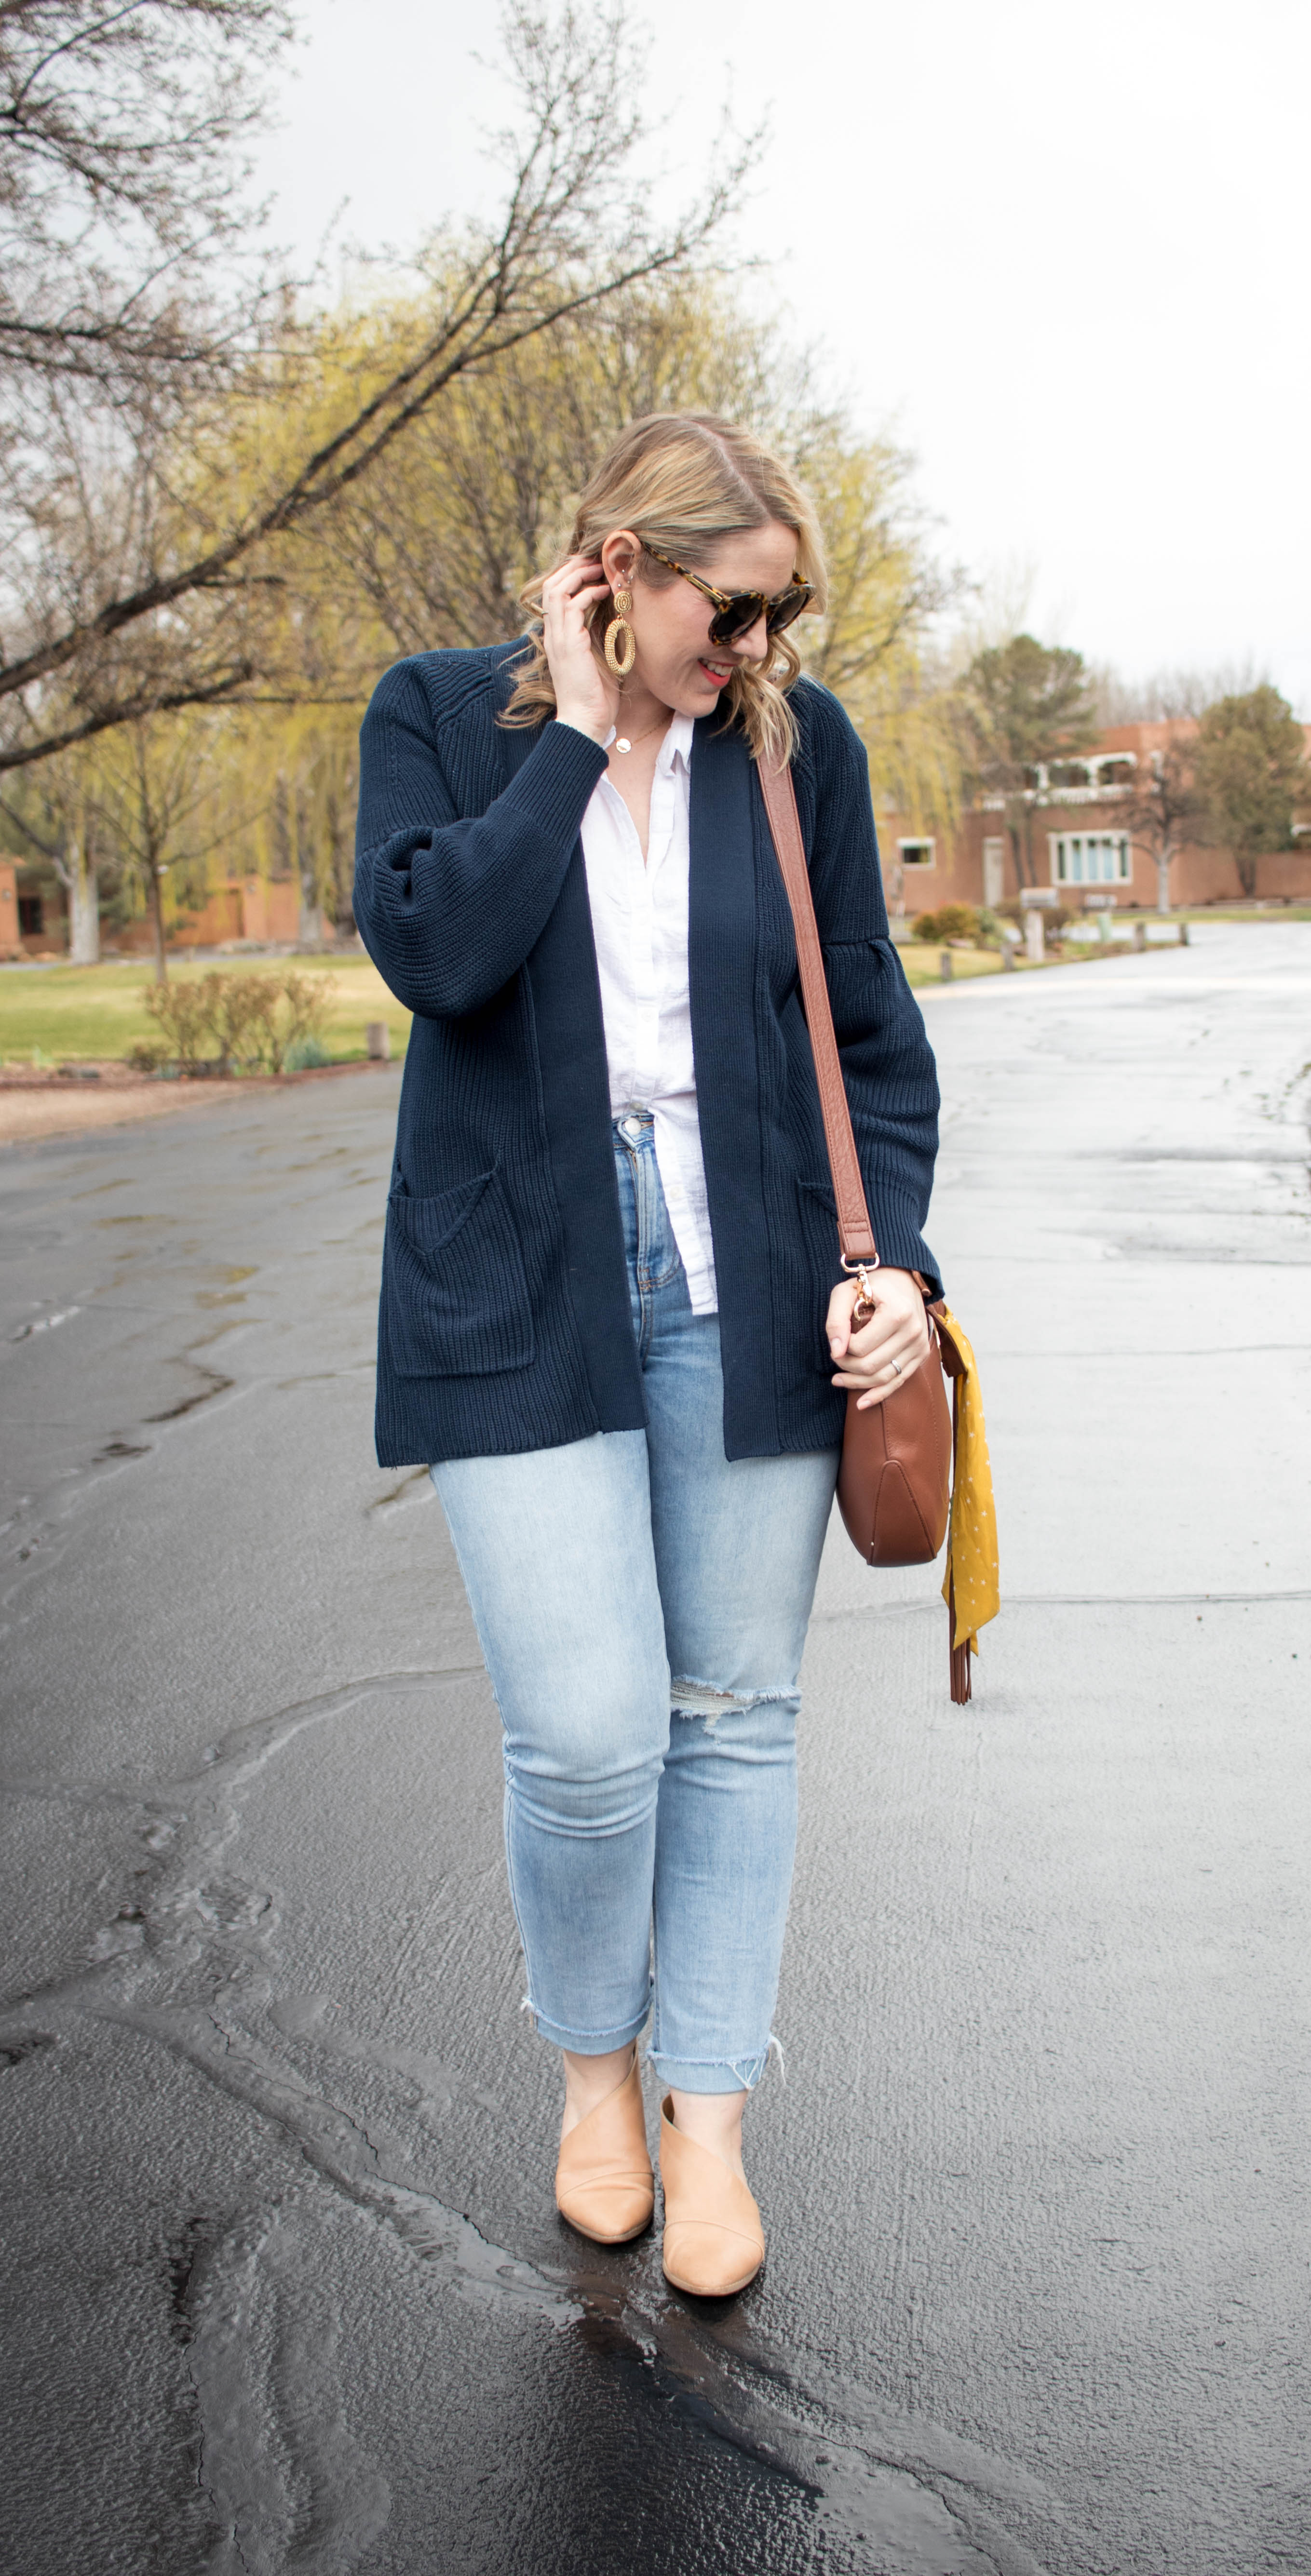 Evy's tree Elizabeth cardigan outfit #evystree #oldnavystyle #momstyle